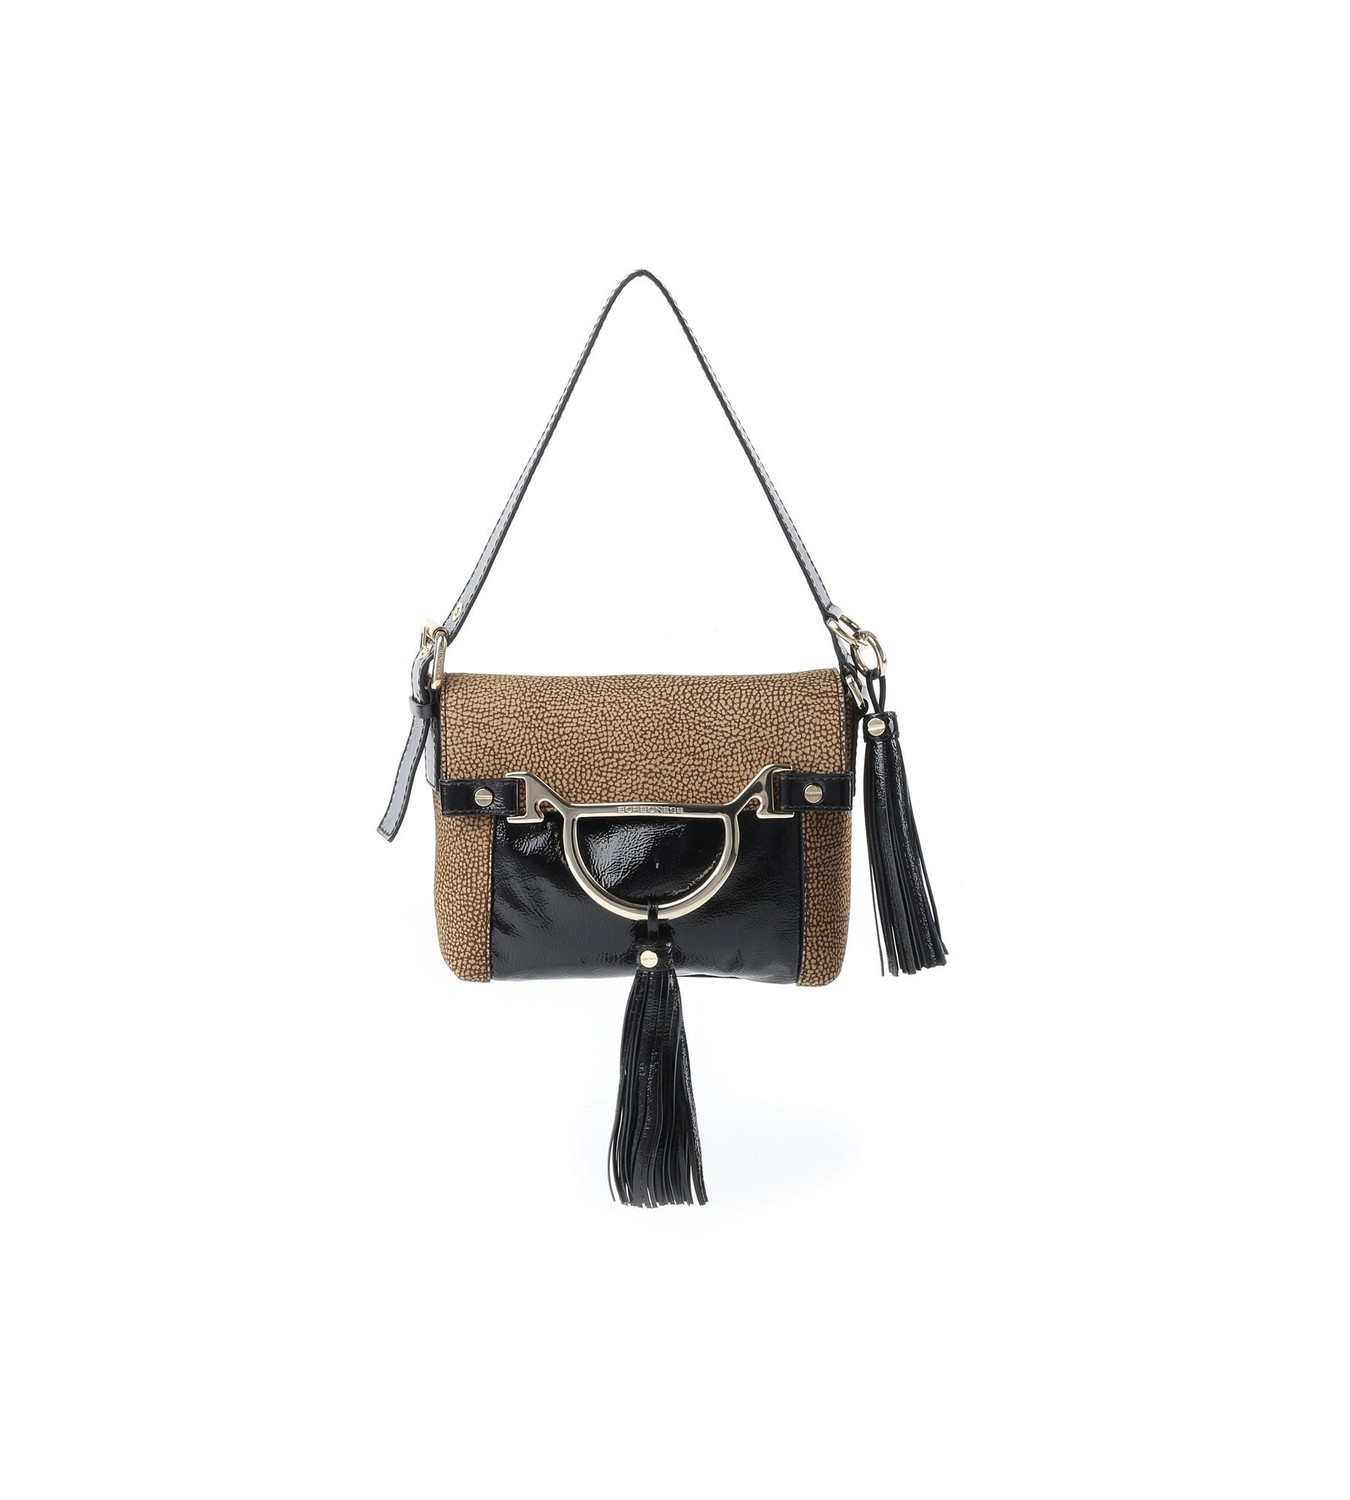 BORBONESE - Diva Bag Small in camoscio O.P. - O.P Naturale/Nero